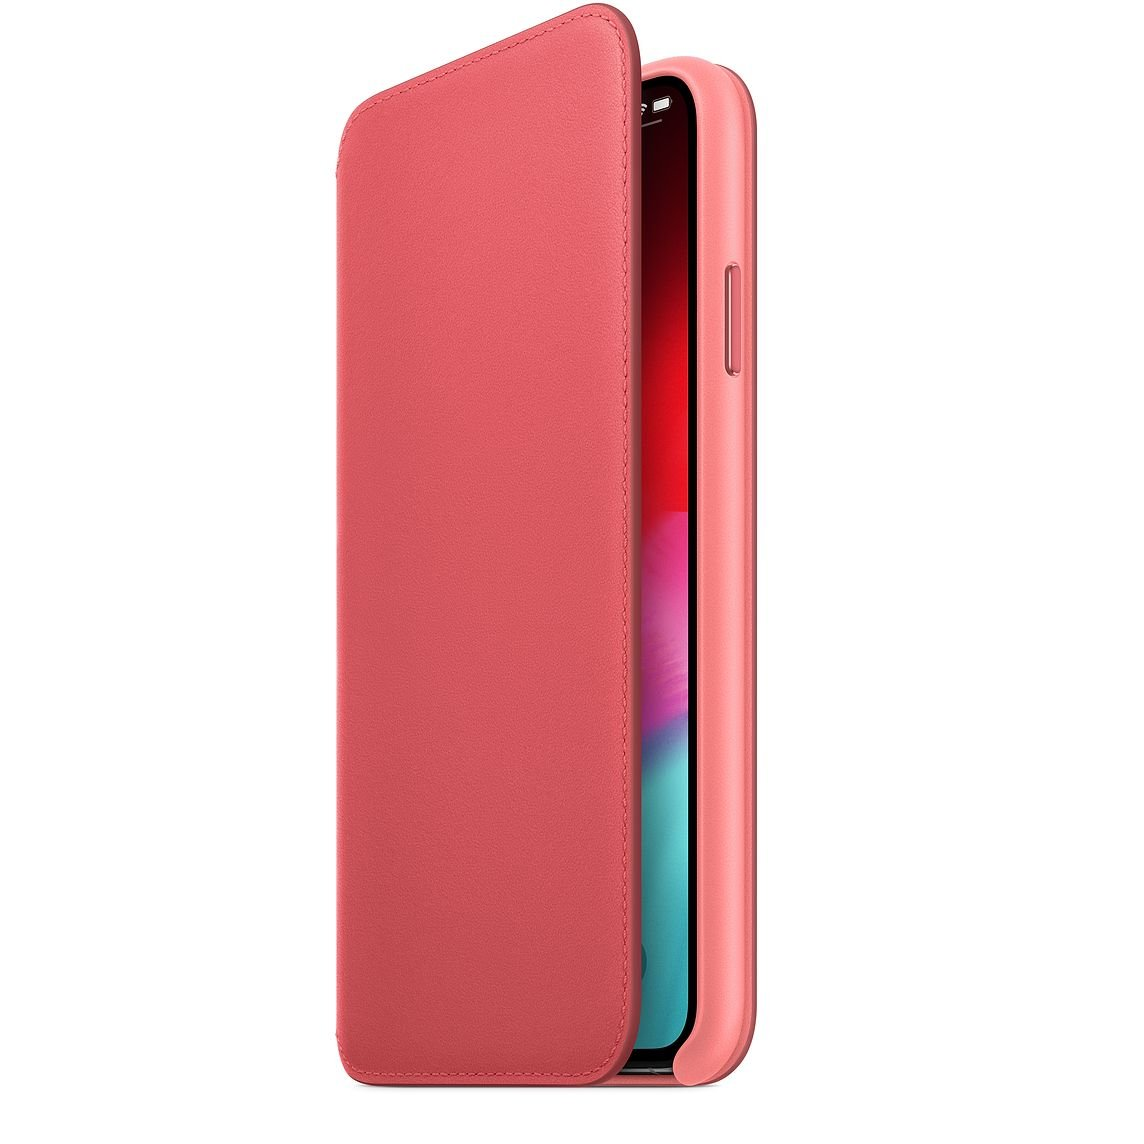 Peony Pink Leather Folio for iPhone XS Max